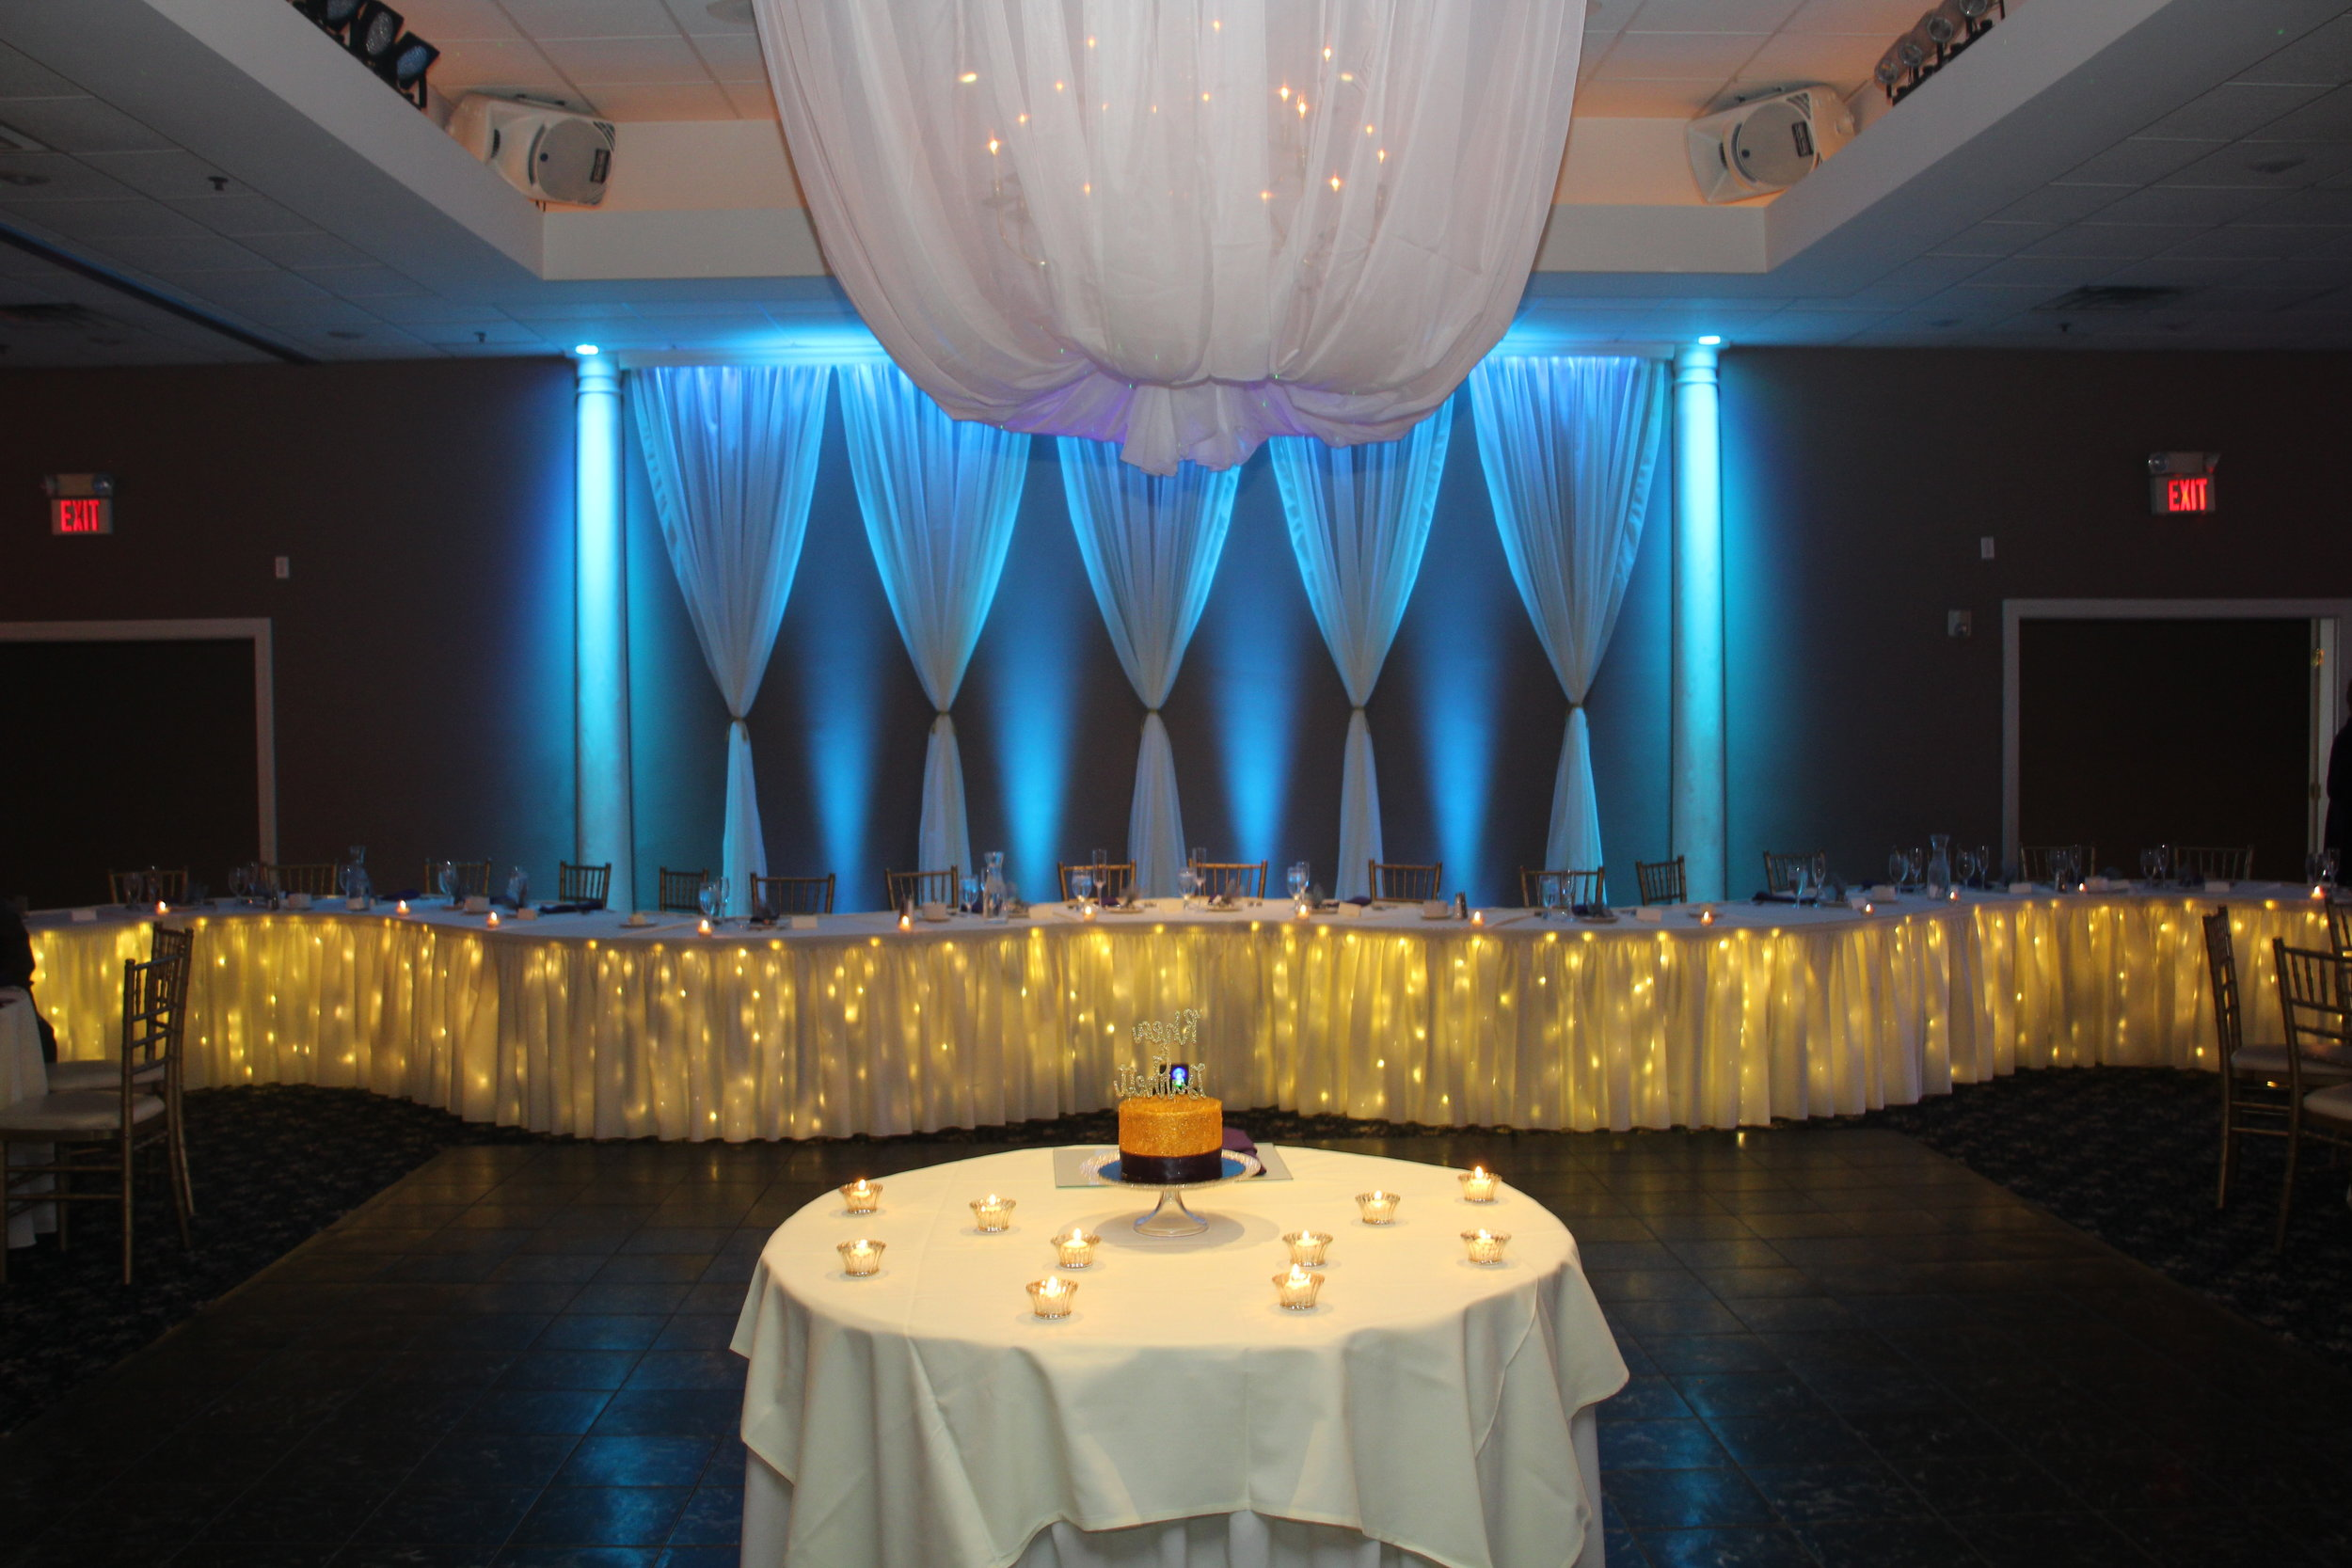 Our brand new ceiling decor made its debut at Rhea and Garrett's wedding. As much as we'd love to take credit for it, we can't. This couple came in with a vision, and we helped bring it to life. So do YOU have a unique idea that has never been done before? If so, share it with us and we can help turn your dream into reality!